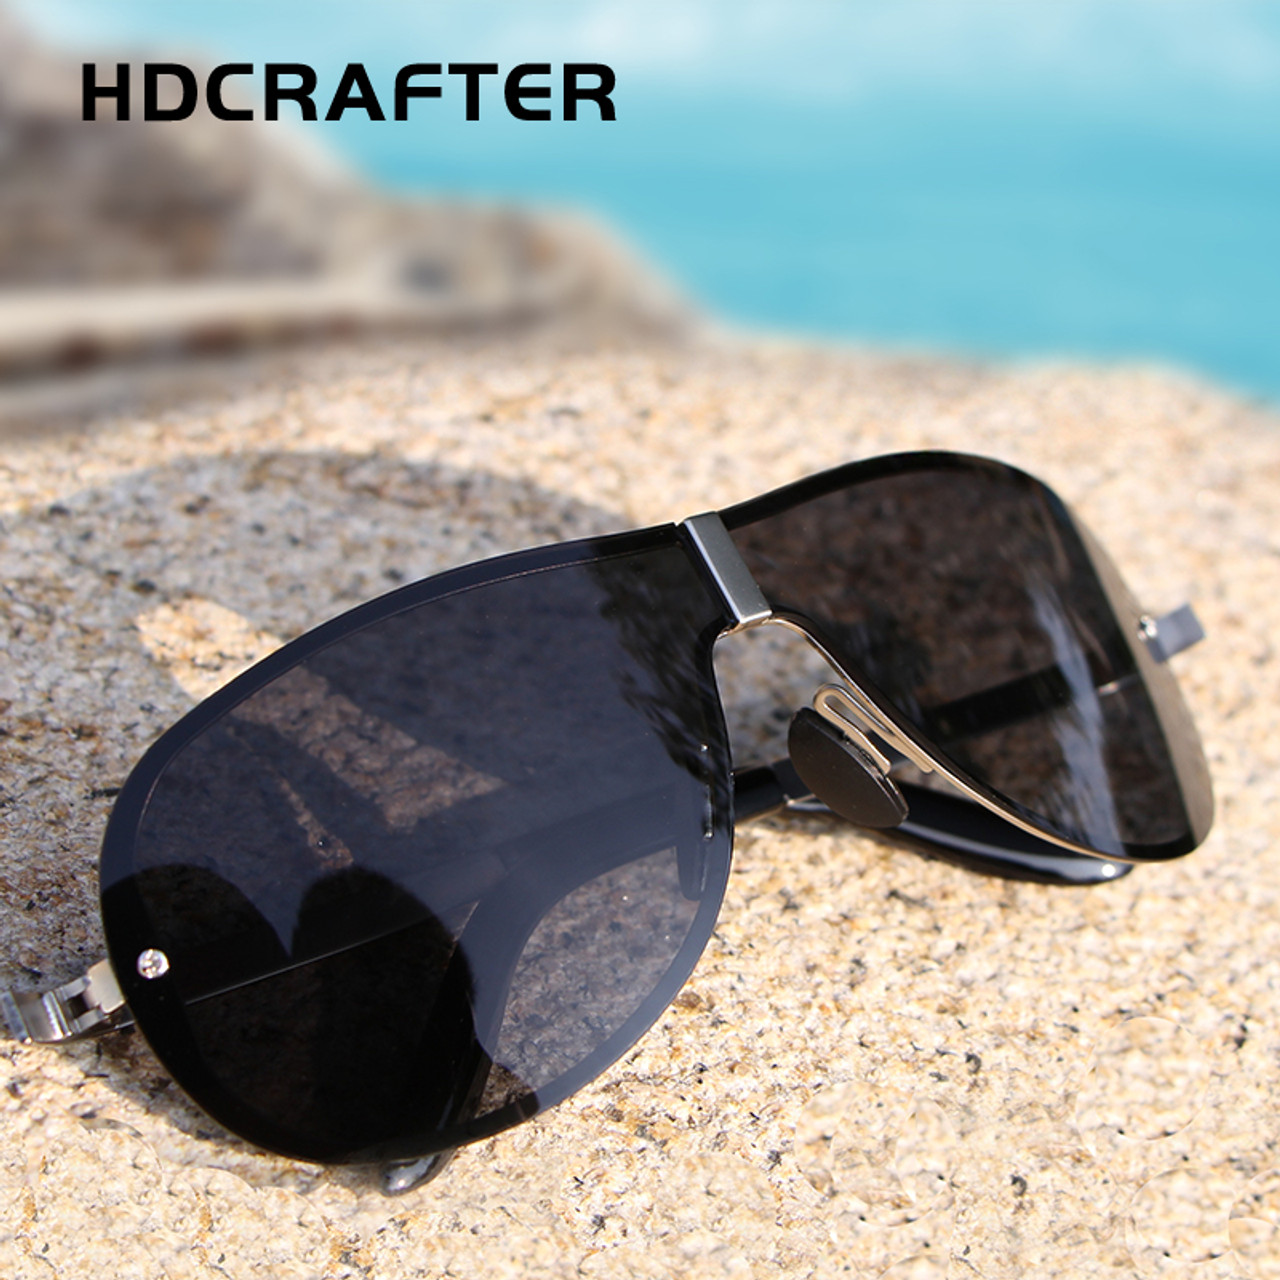 bb58038e89f ... HDCRAFTER Brand Sunglasses for Men 2017 Designer Polarized Driving  Sunglasses Sun Glasses Male Oculos de sol ...